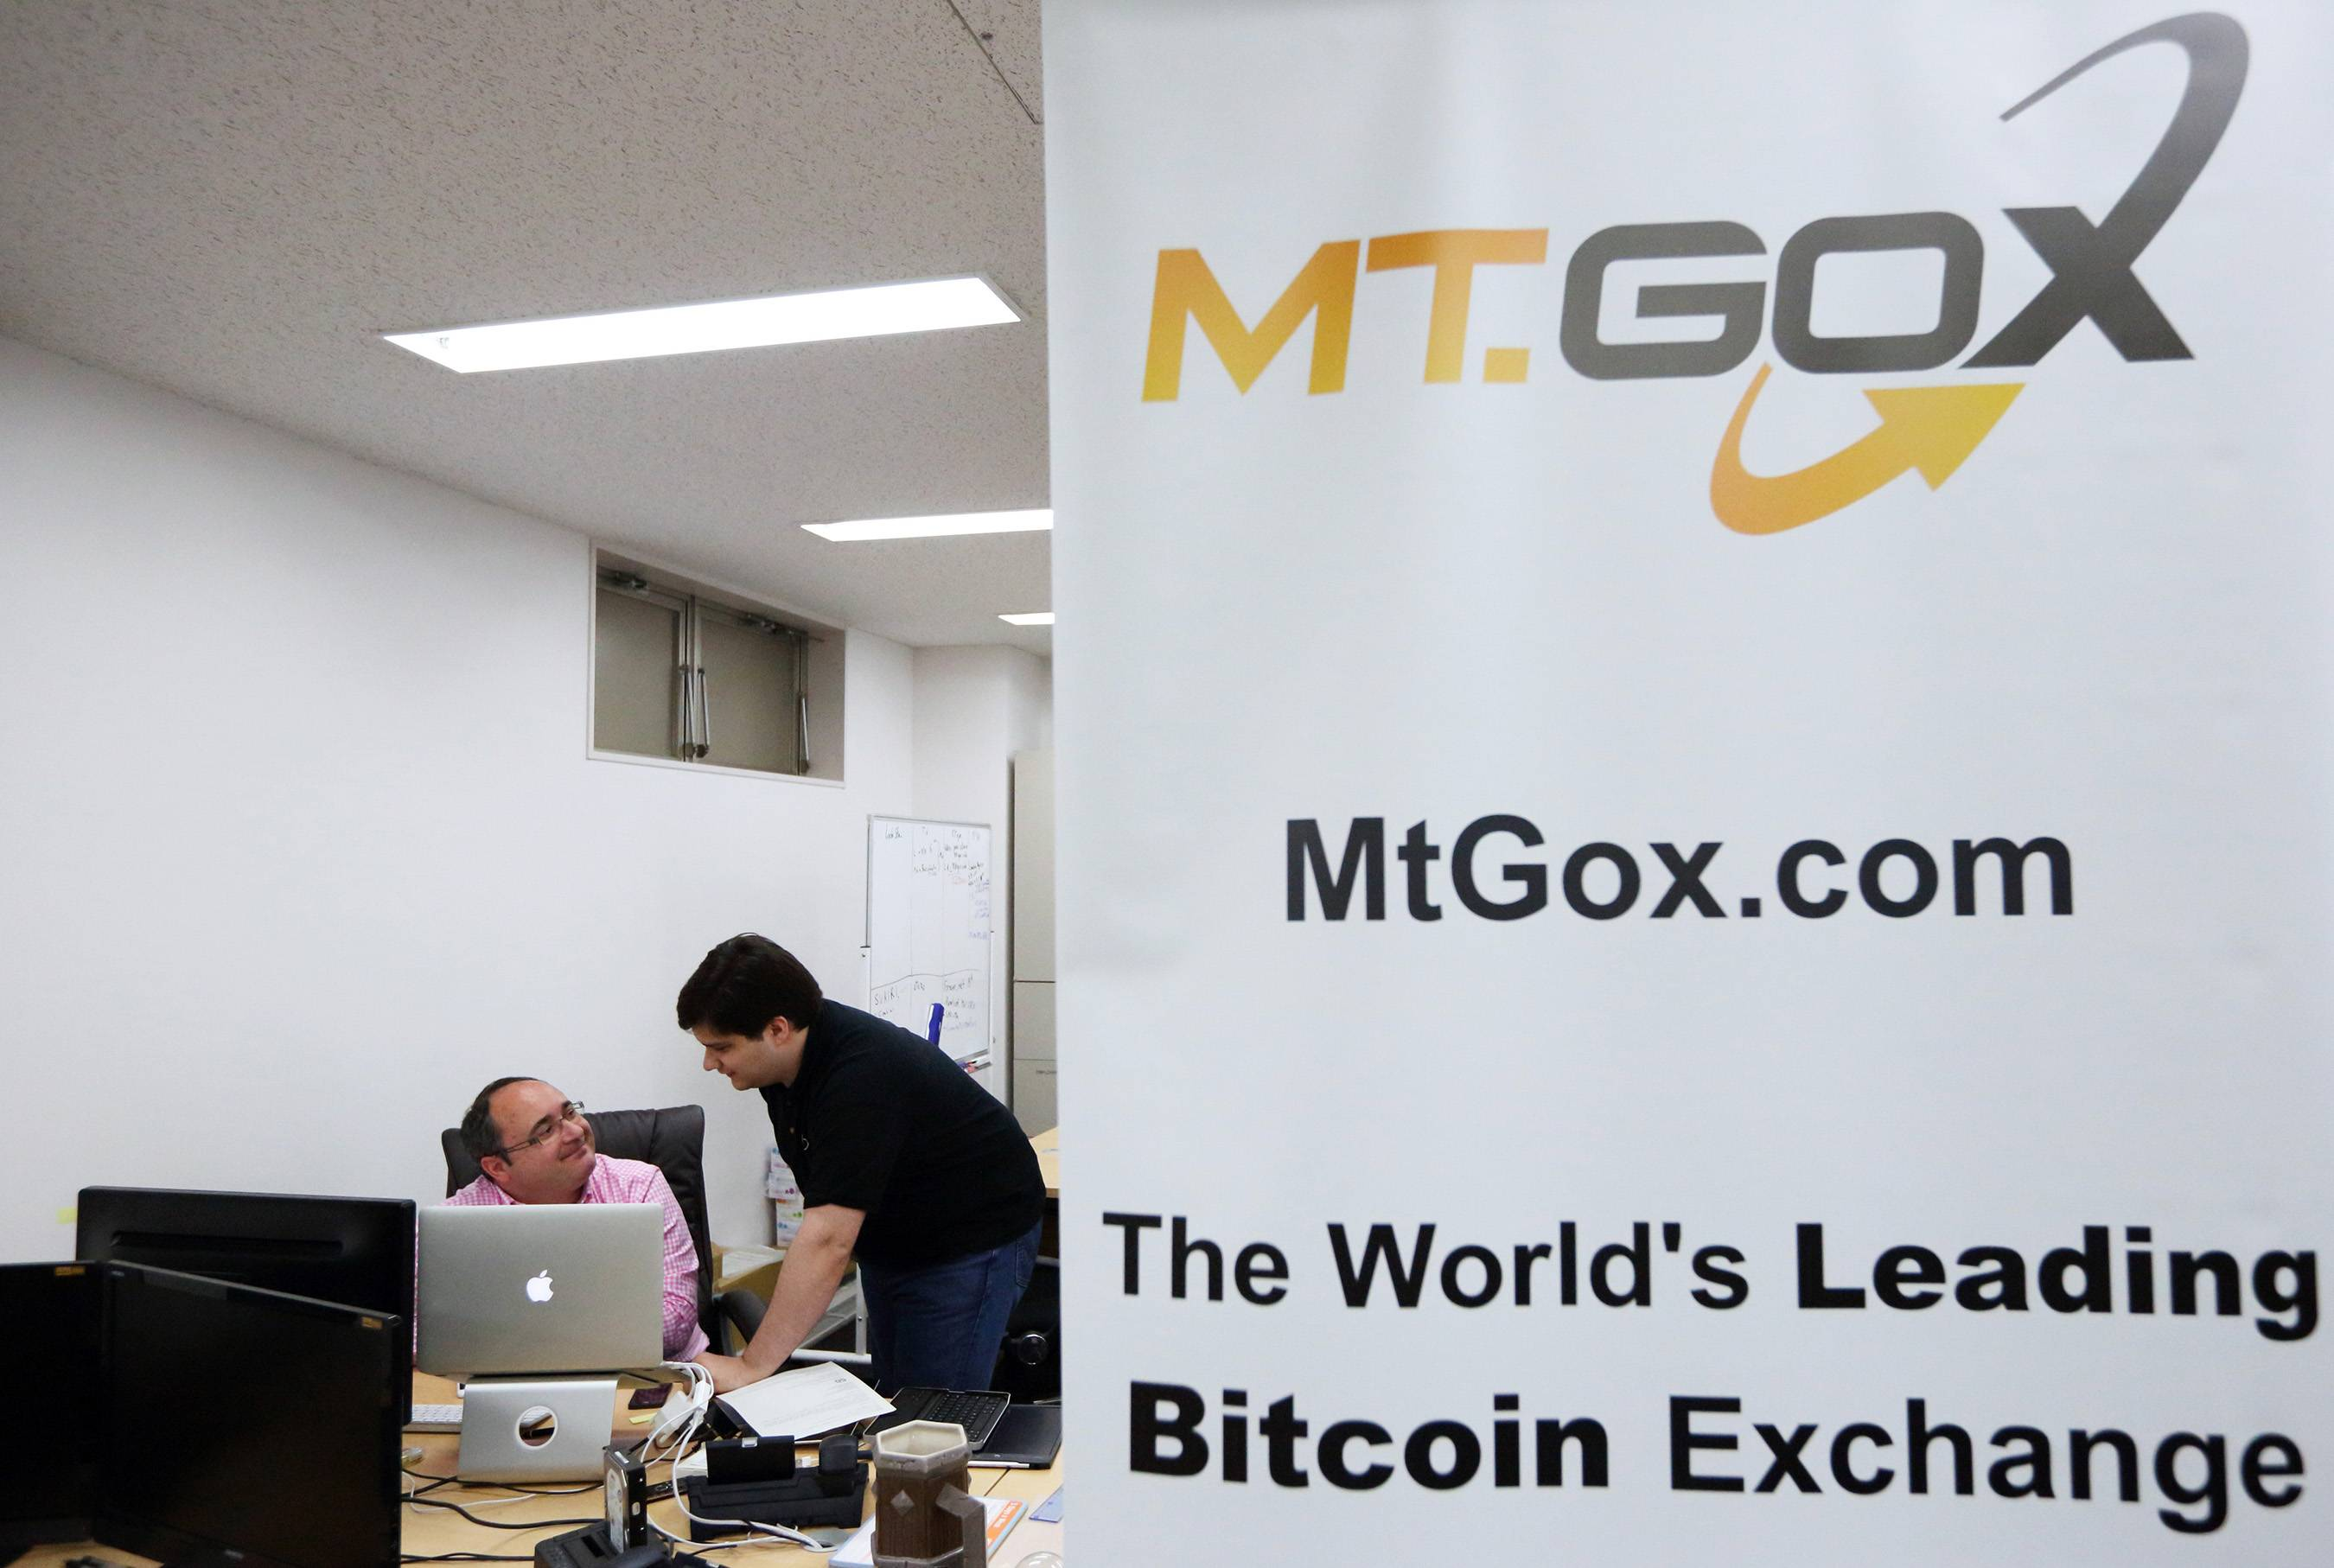 Mark Karpeles, chief executive officer of Tibanne Co., right, speaks to an employee in the office operating the Mt.Gox K.K. bitcoin exchange in Tokyo, Japan, in April 2013. Bitcoin digital currency, which carries the unofficial ticker symbol of BTC, was unveiled in 2009 by an unidentified programmer, or group of programmers, under the name of Satoshi Nakamoto. Supply is capped at 21 million Bitcoins and managed by a software algorithm embedded into the digital currency's design, rather than a monetary authority such as a central bank.